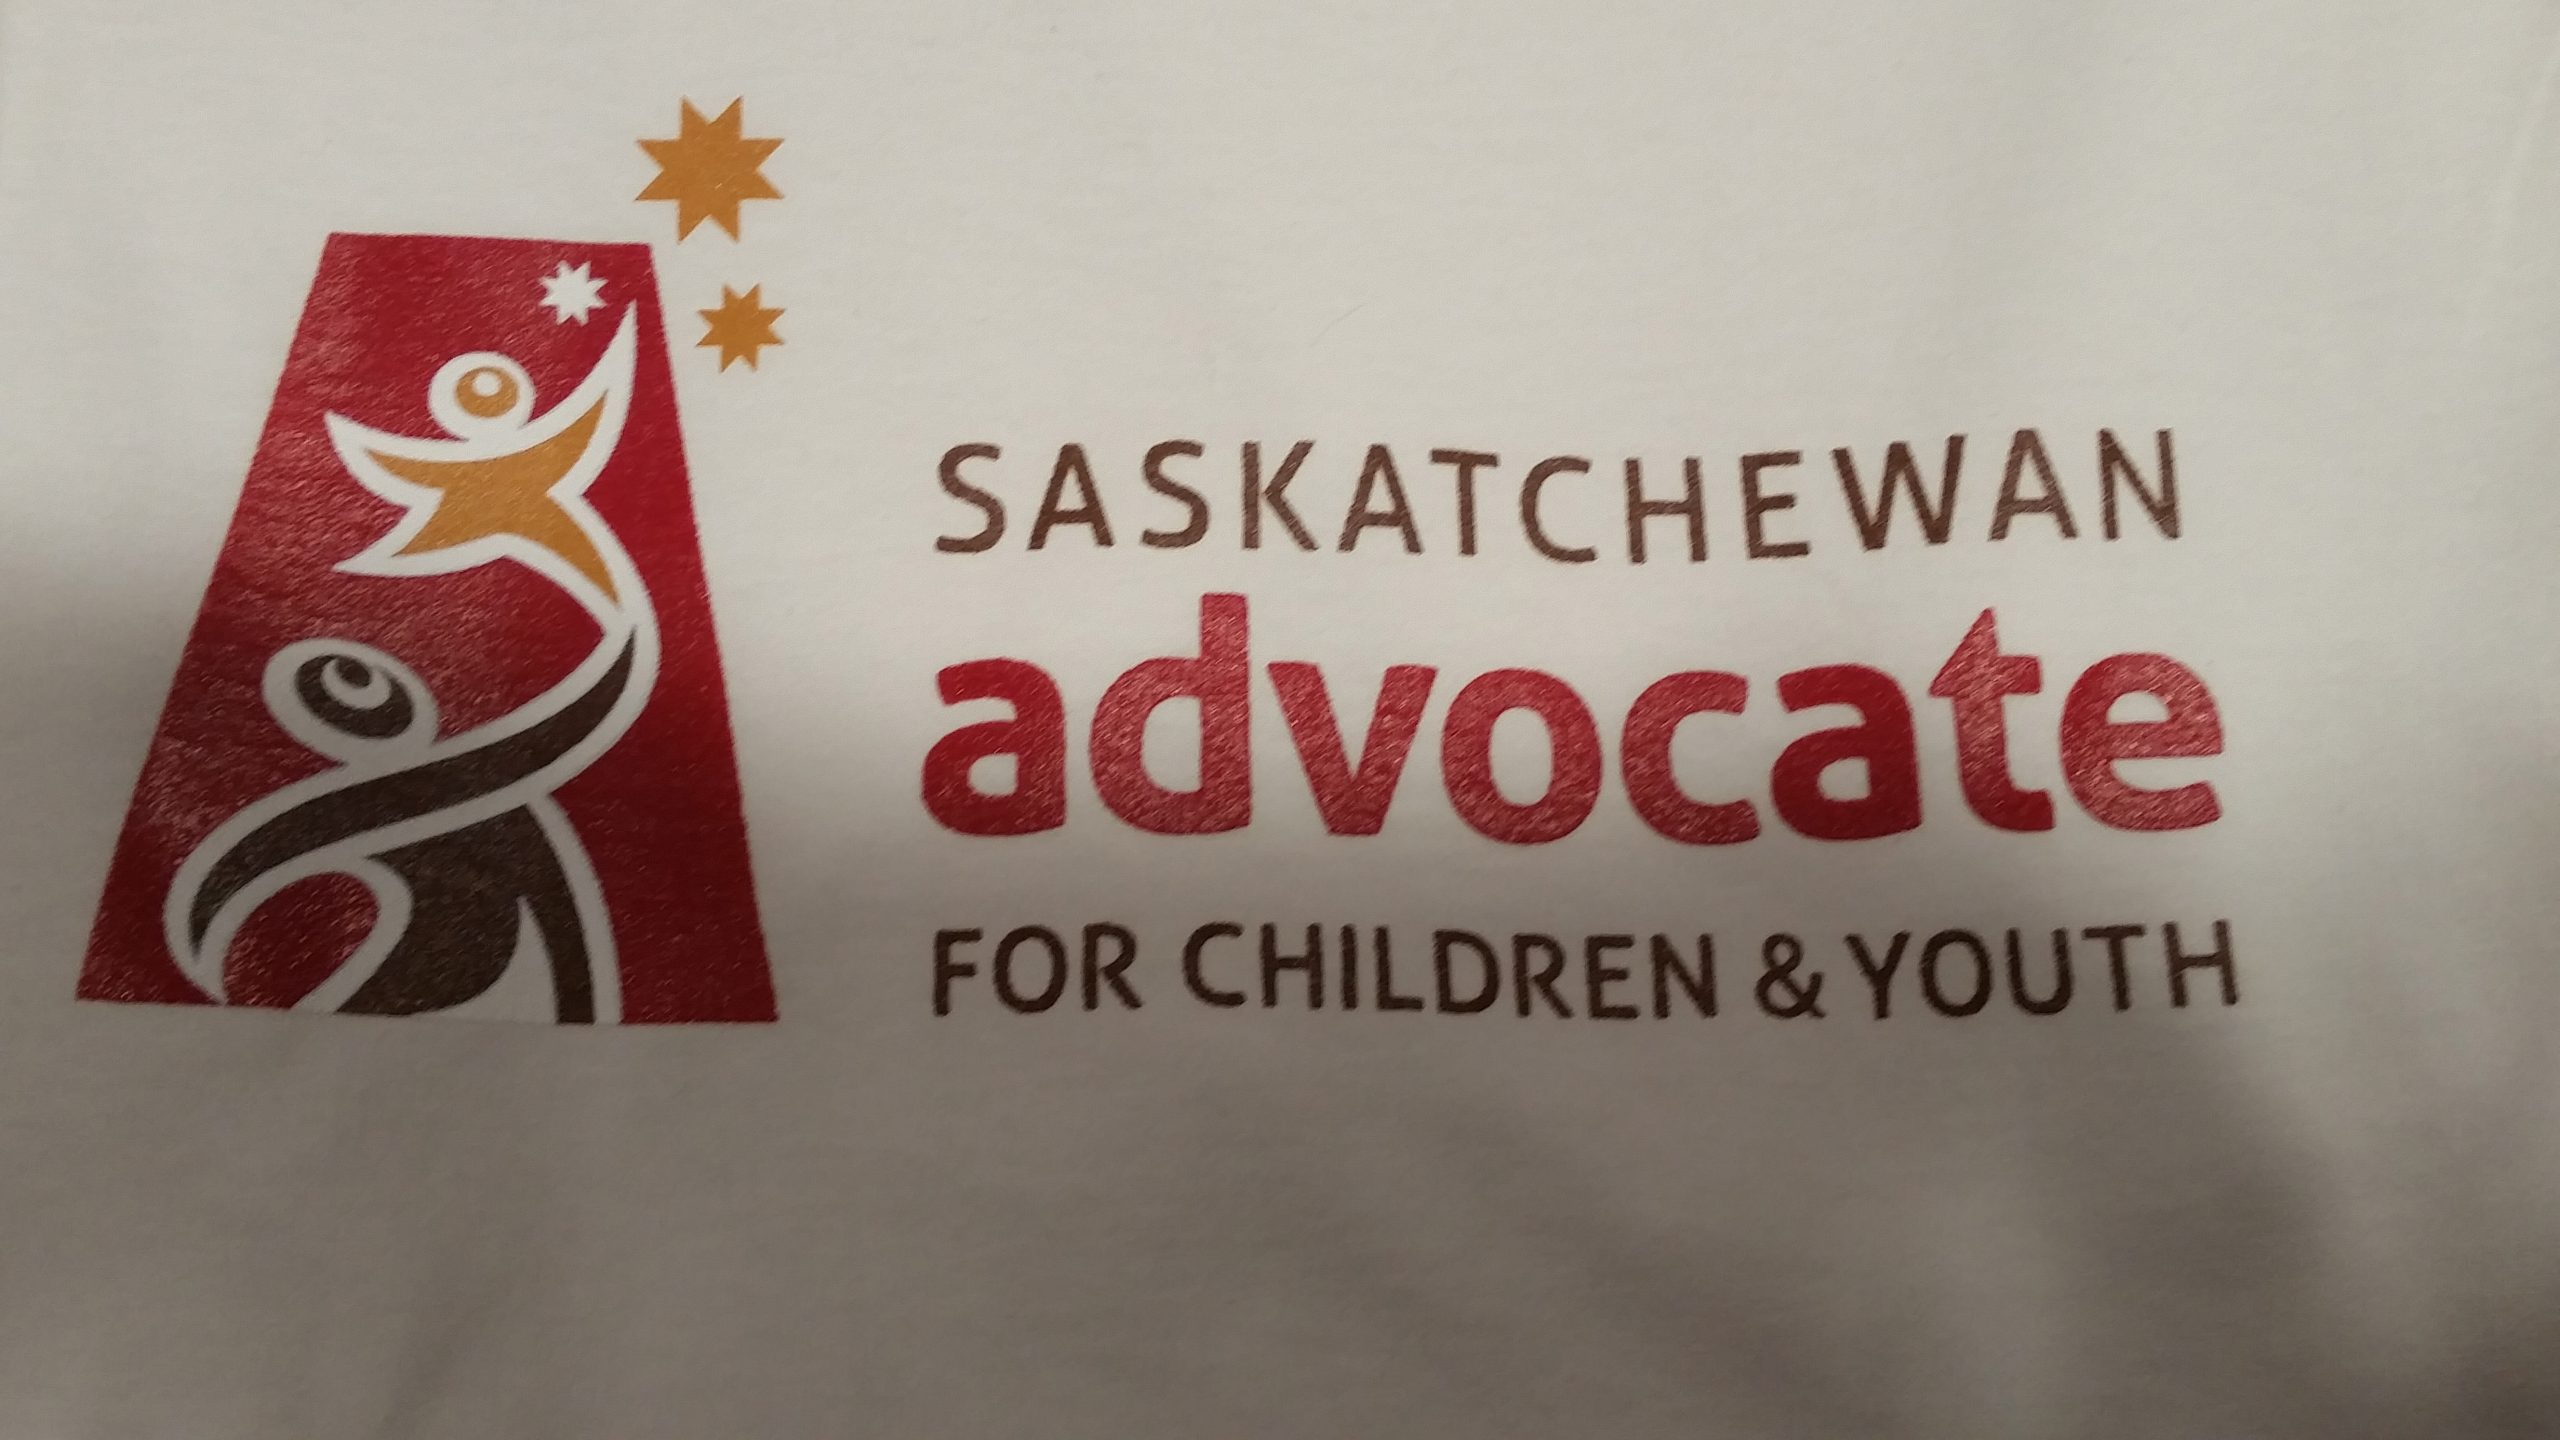 Advocate for Children and Youth Has a New Logo